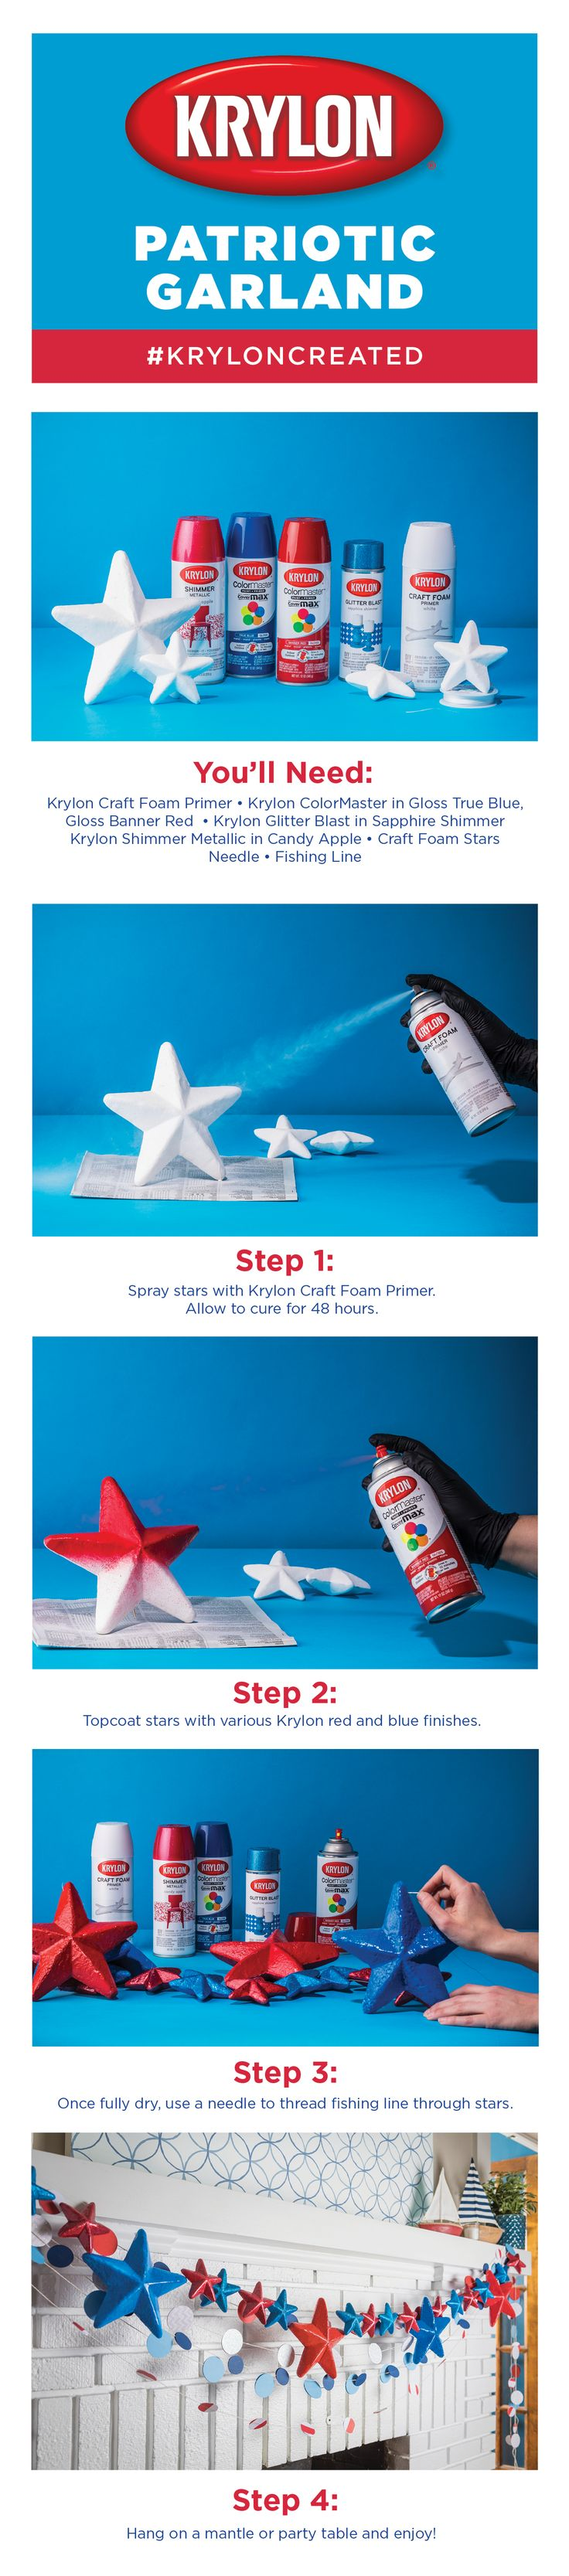 There is no better way to celebrate the USA than with red, white, and blue stars!  Decorate a party table or mantle for the 4th of July by hanging spray painted star garland created with Krylon Craft Foam Primer, Krylon ColorMaster in Gloss True Blue and Gloss Banner Red, Krylon Shimmer Metallic in Candy Apple, and Krylon Glitter Blast in Sapphire Shimmer!  Click the link to make your own!